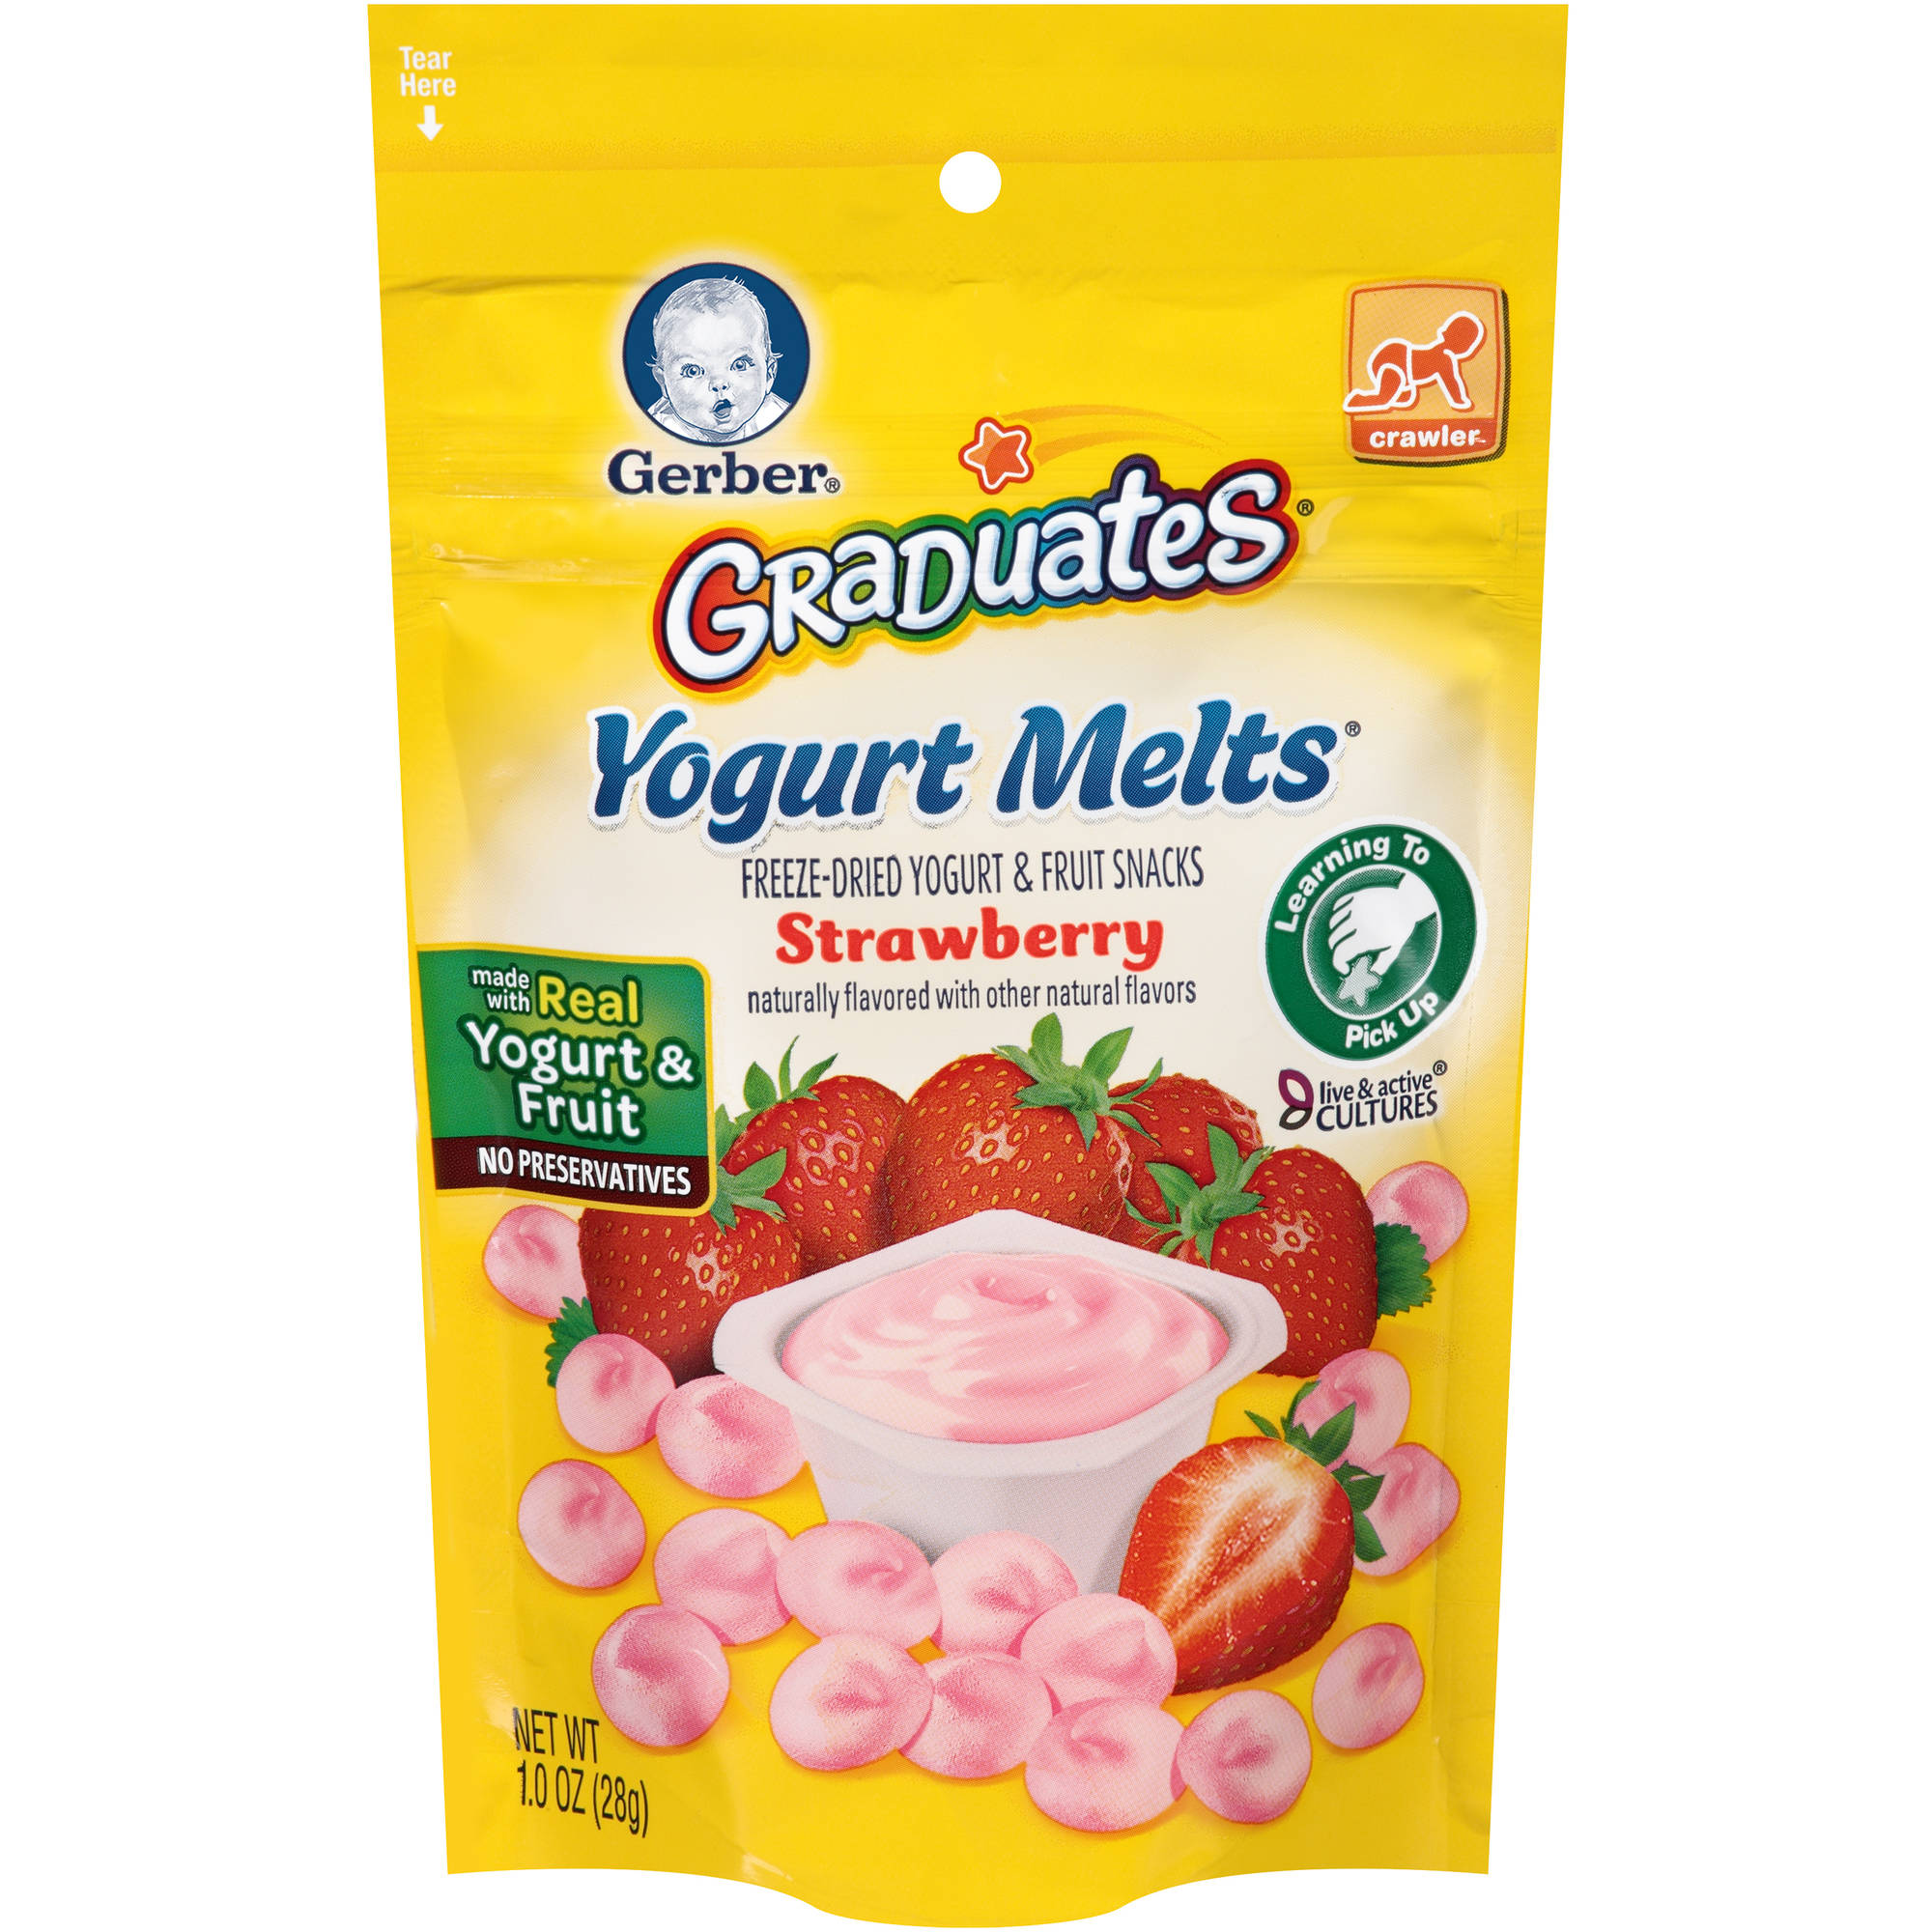 Gerber Graduates Yogurt Melts Freeze-Dried Yogurt and Fruit Snacks, Strawberry, Naturally Flavored with Other Natural Flavors, 1 ounce, 1 count